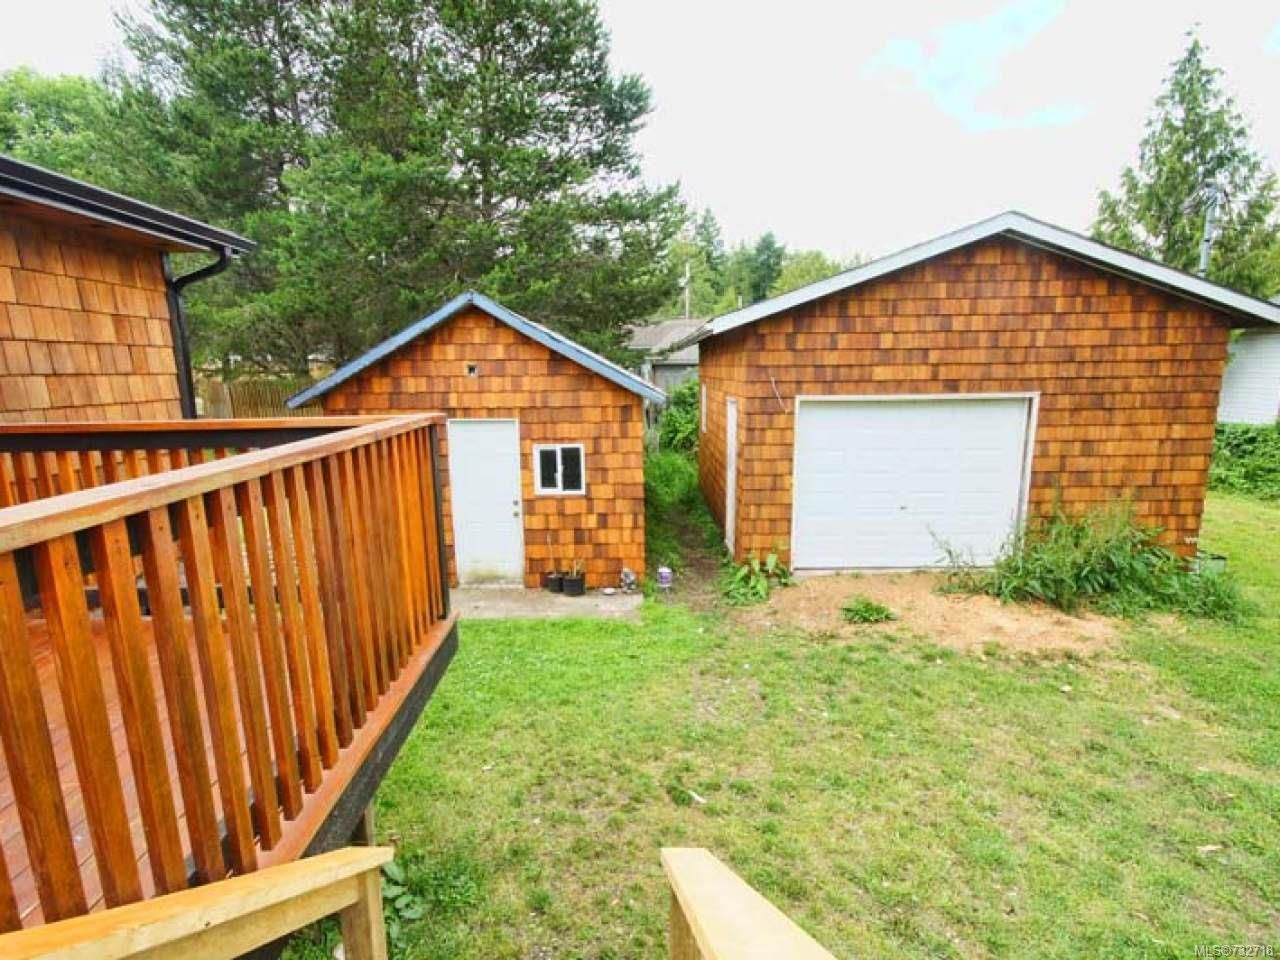 Photo 27: Photos: 921 POPLAR Way in ERRINGTON: PQ Errington/Coombs/Hilliers Manufactured Home for sale (Parksville/Qualicum)  : MLS®# 732718